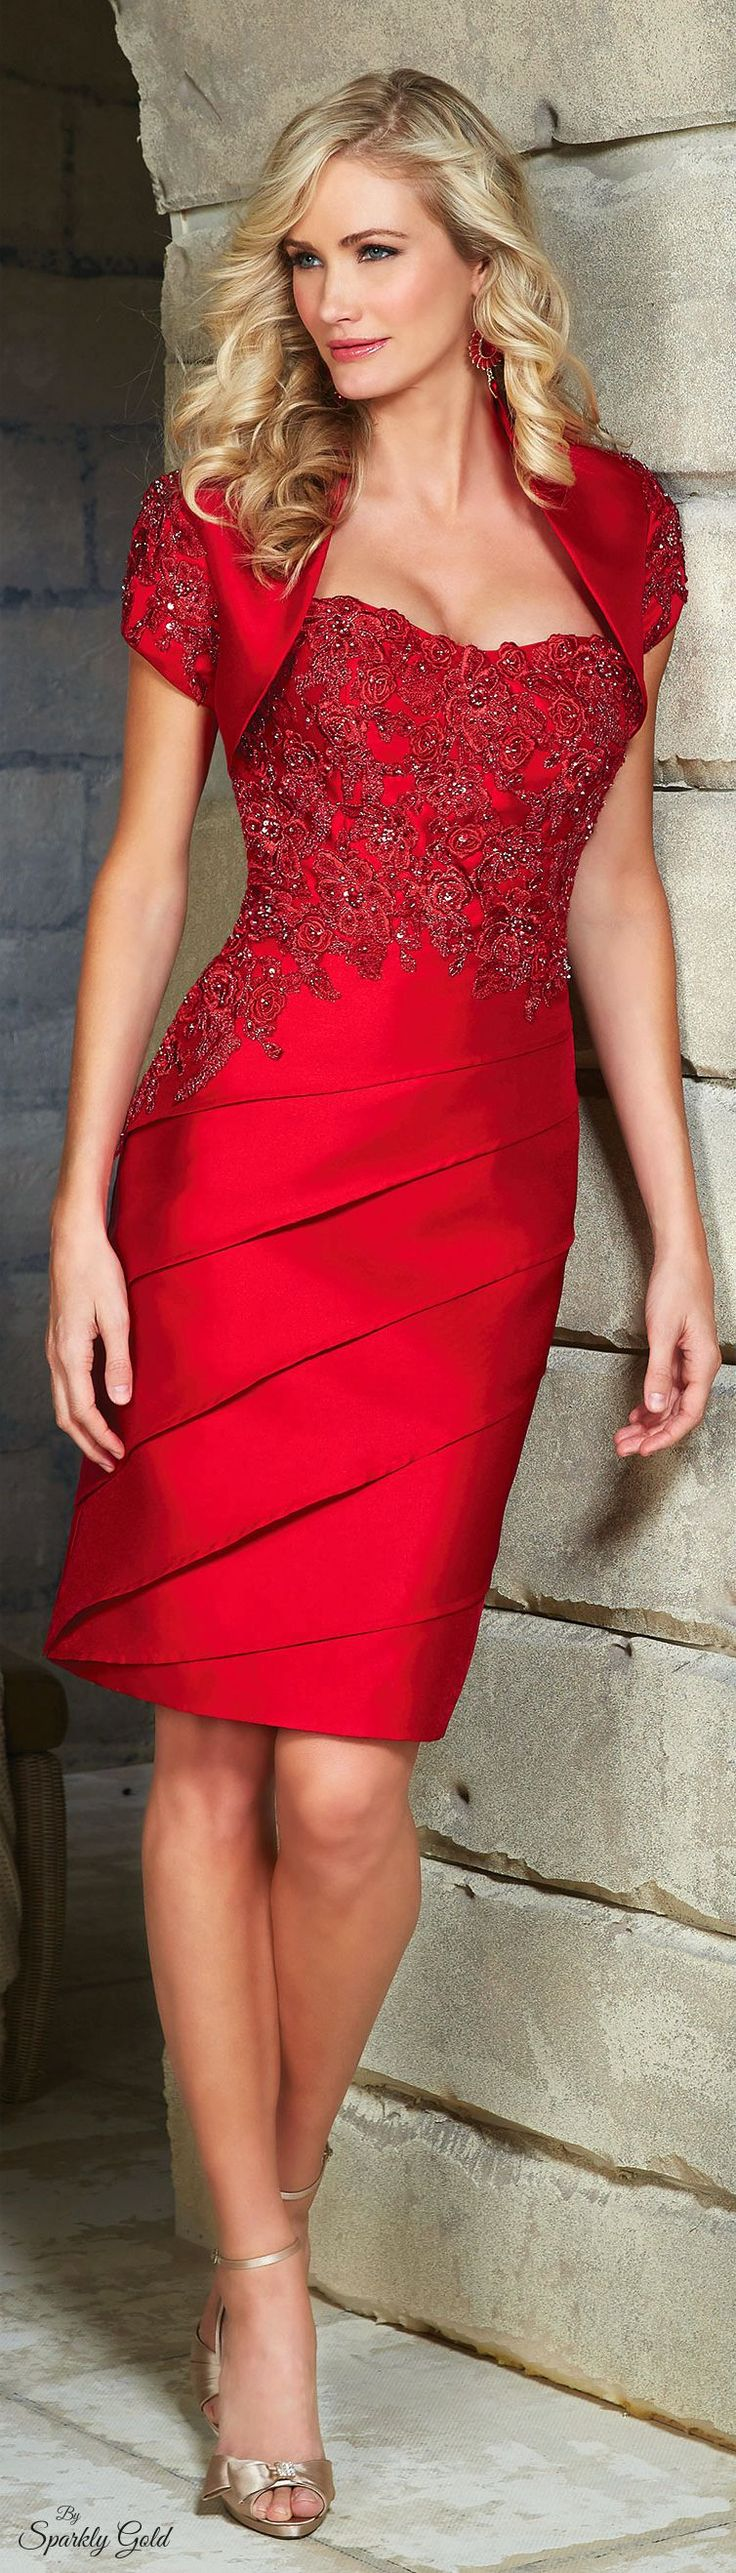 VM red maxi dress women fashion outfit clothing style apparel @roressclothes closet ideas